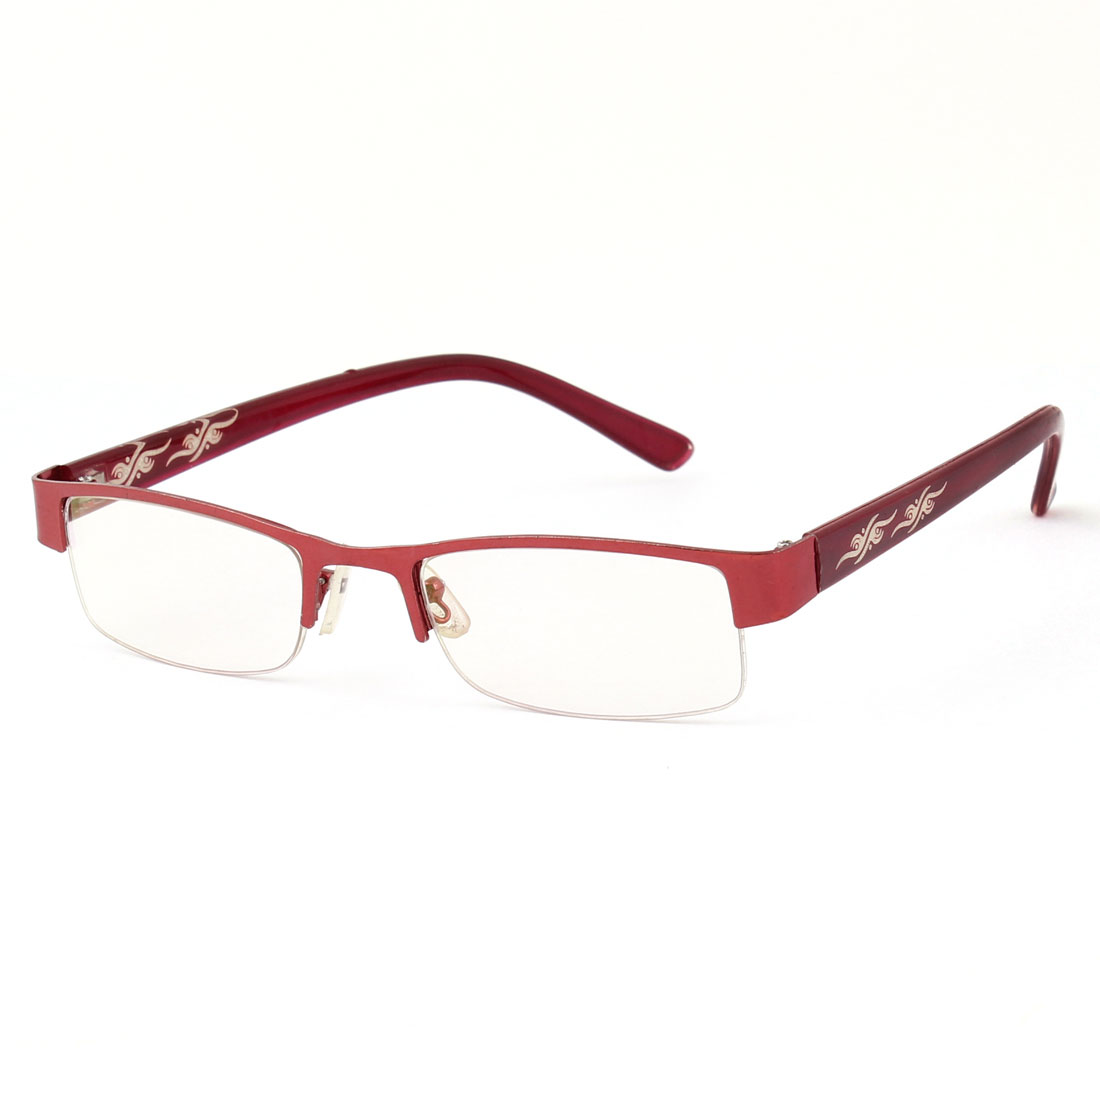 Unisex Plastic Dark Red Rectangle Half Frame MC Lens Plano Eyeglasses